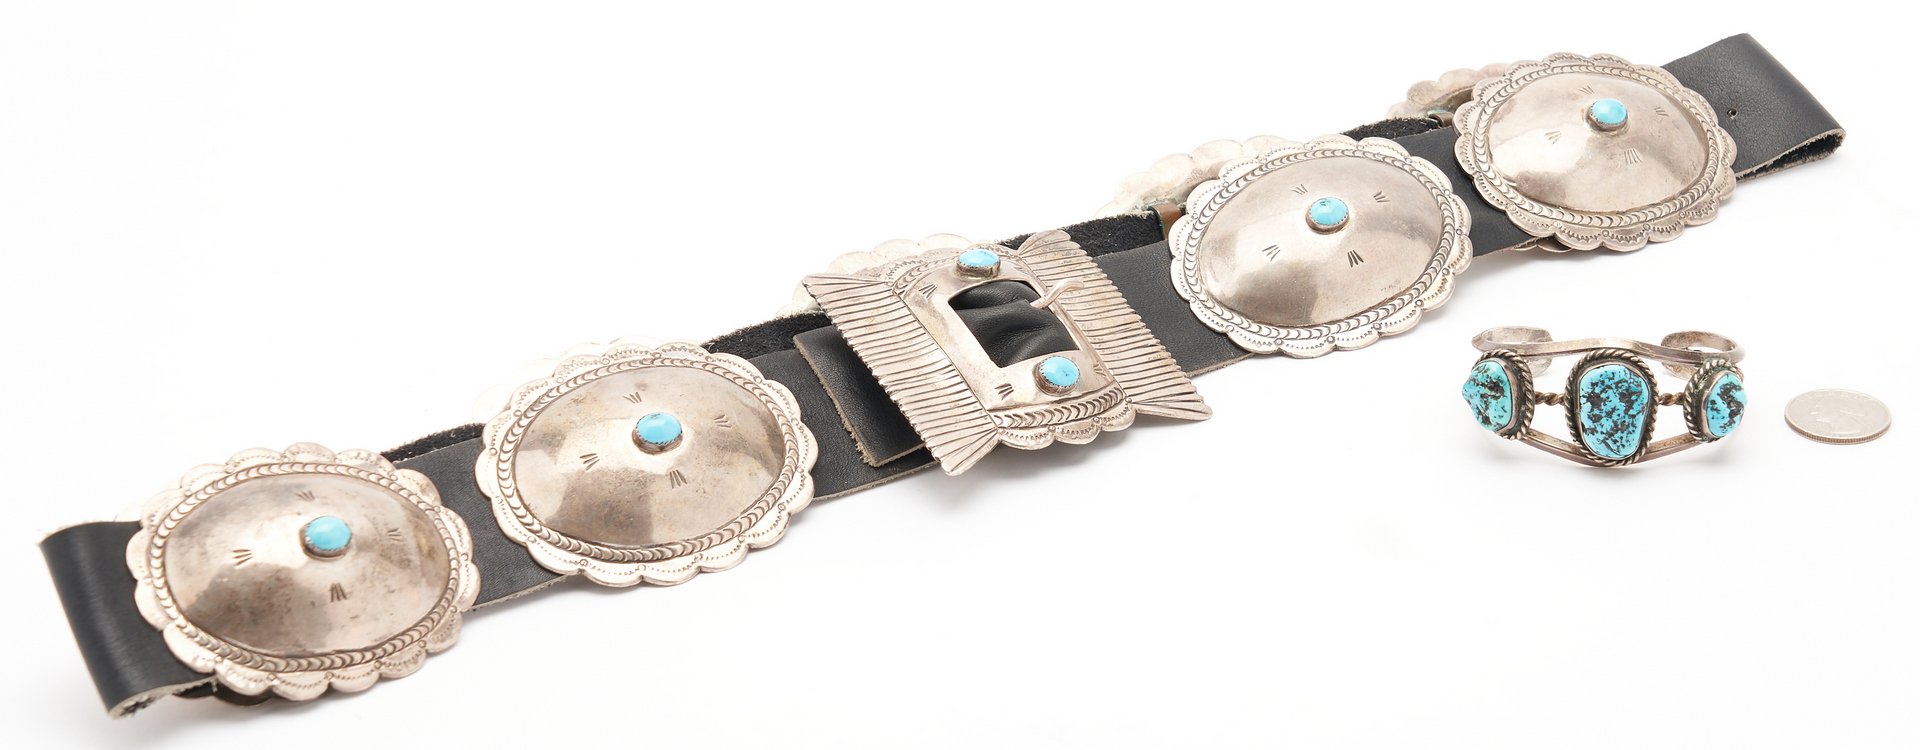 Lot 1085: 2 Navajo Native American Sterling Jewelry Items, incl. Concho Belt